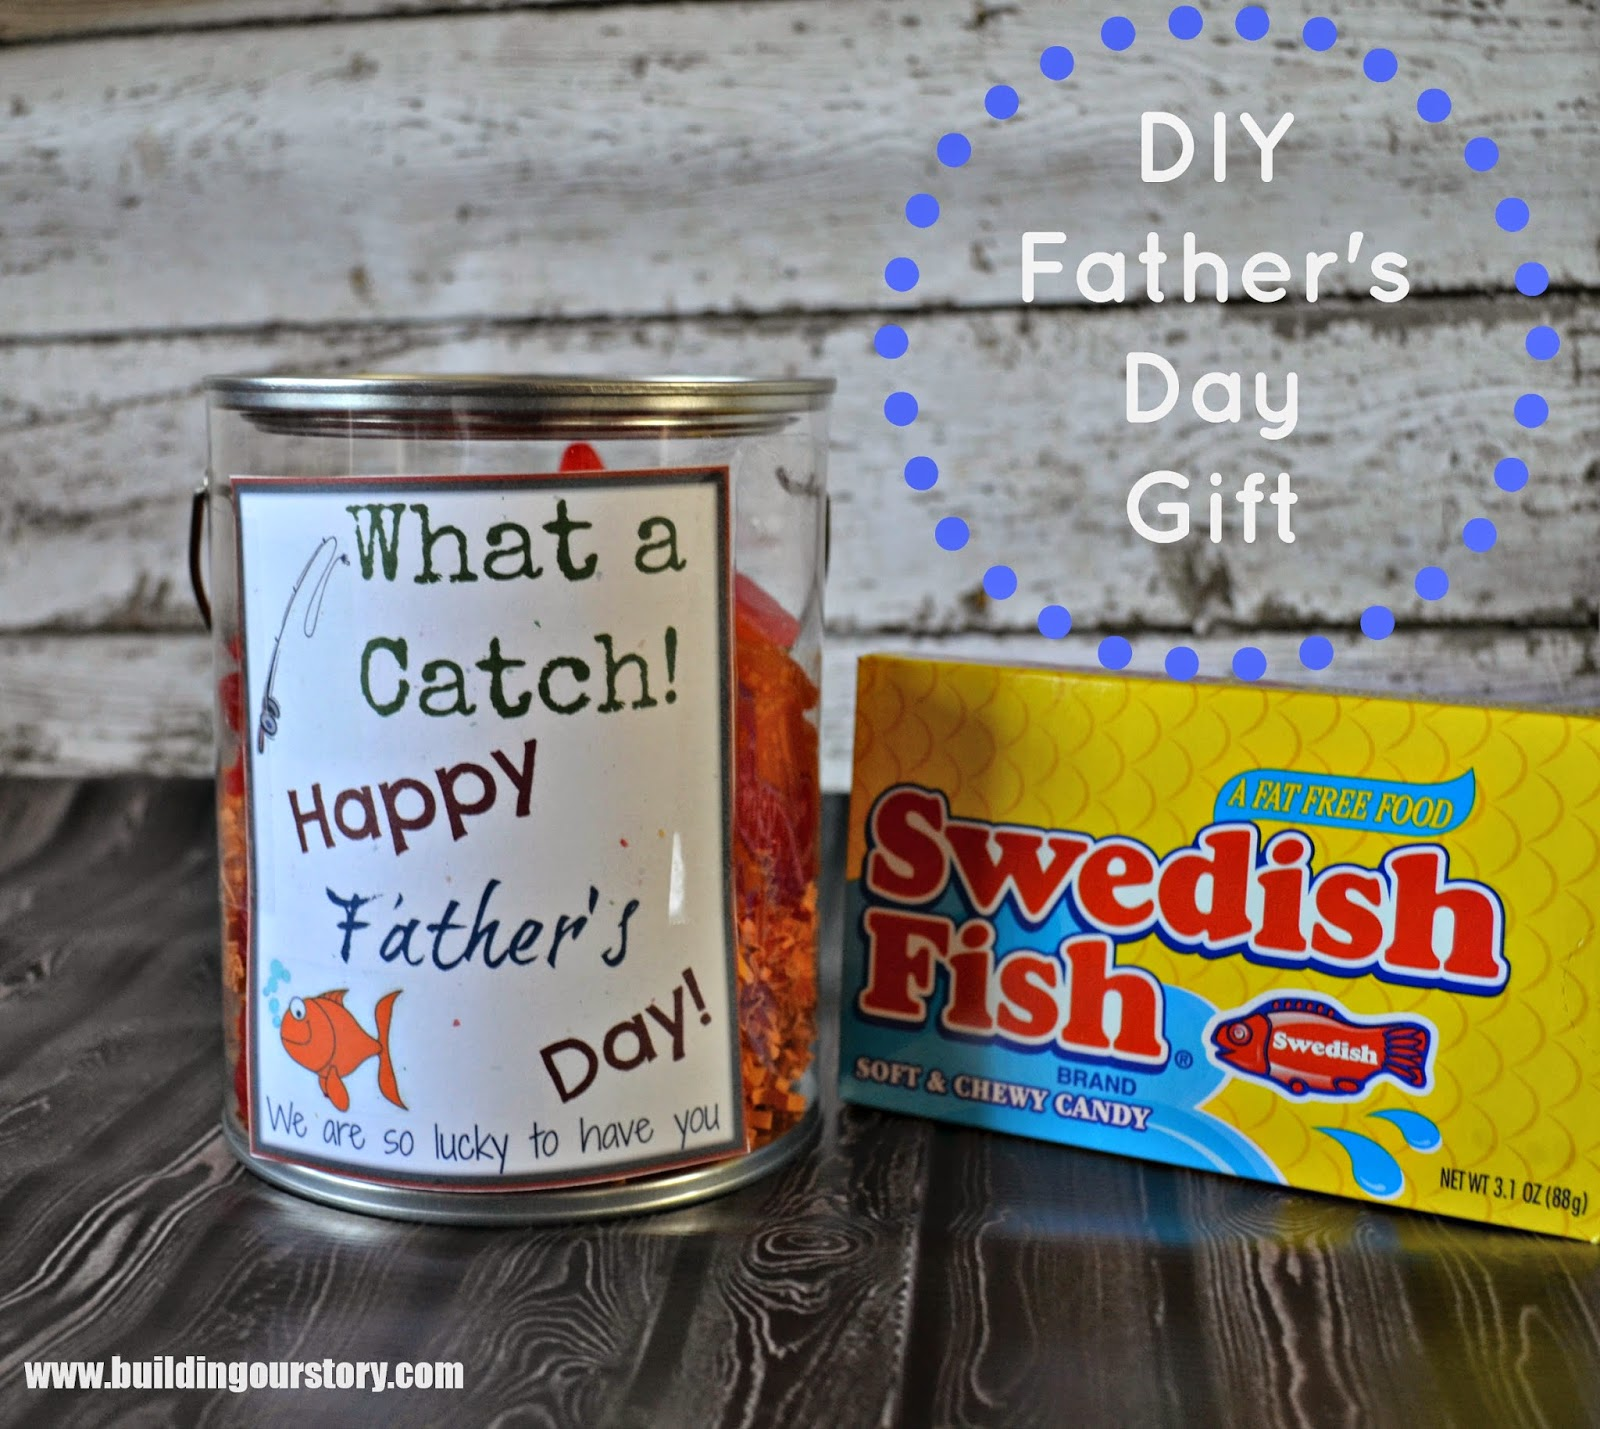 #DIY Father's Day Gift Idea and Free Printable.  What a Catch Father's Day gift.  DIY gifts for dad.